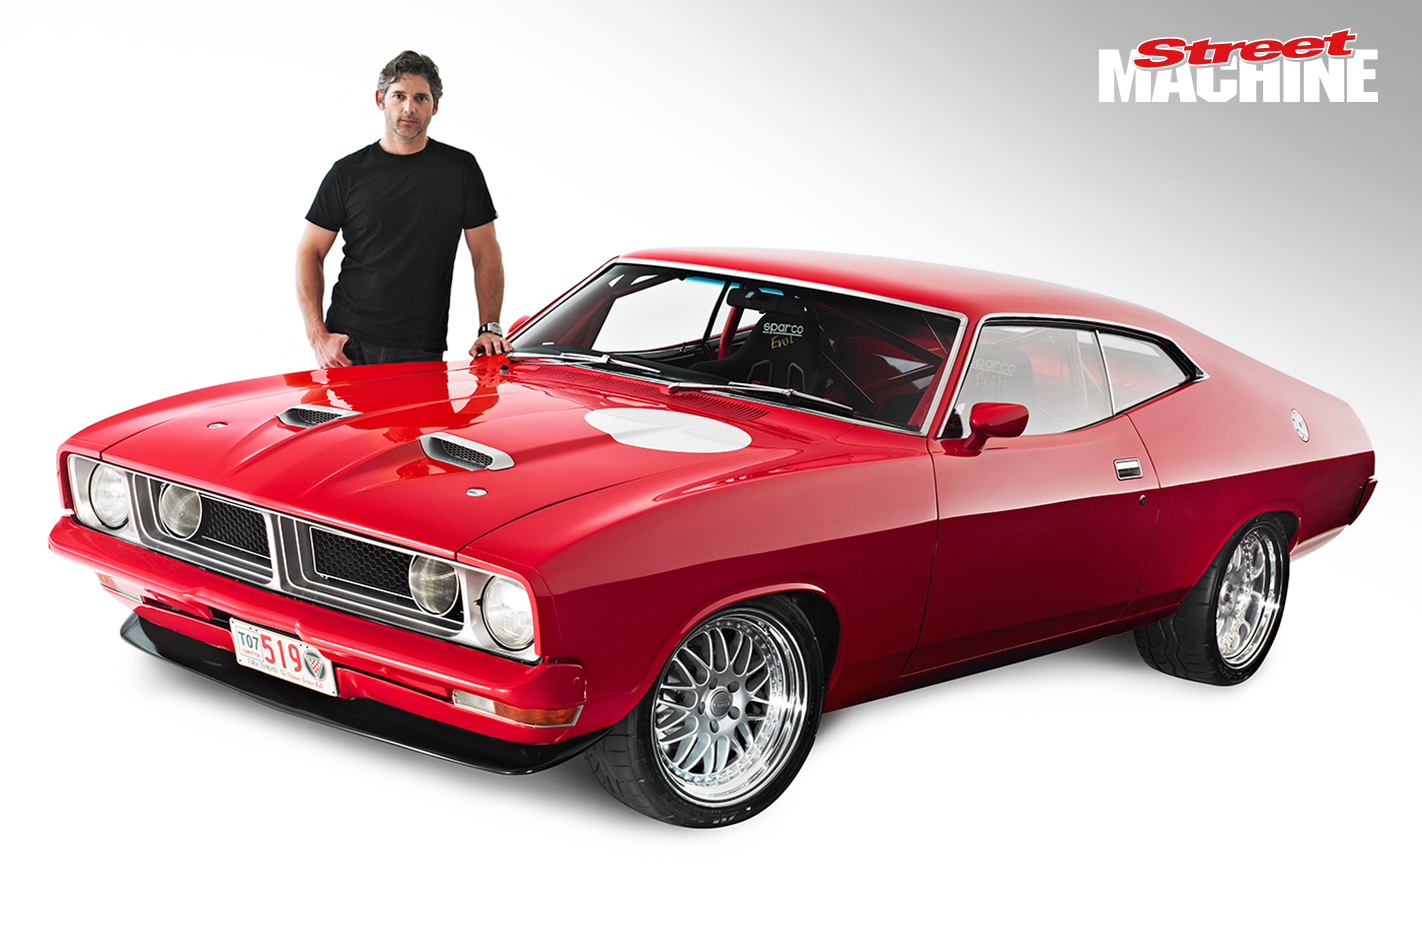 Eric Bana Ford XB Coupe Love The Beast